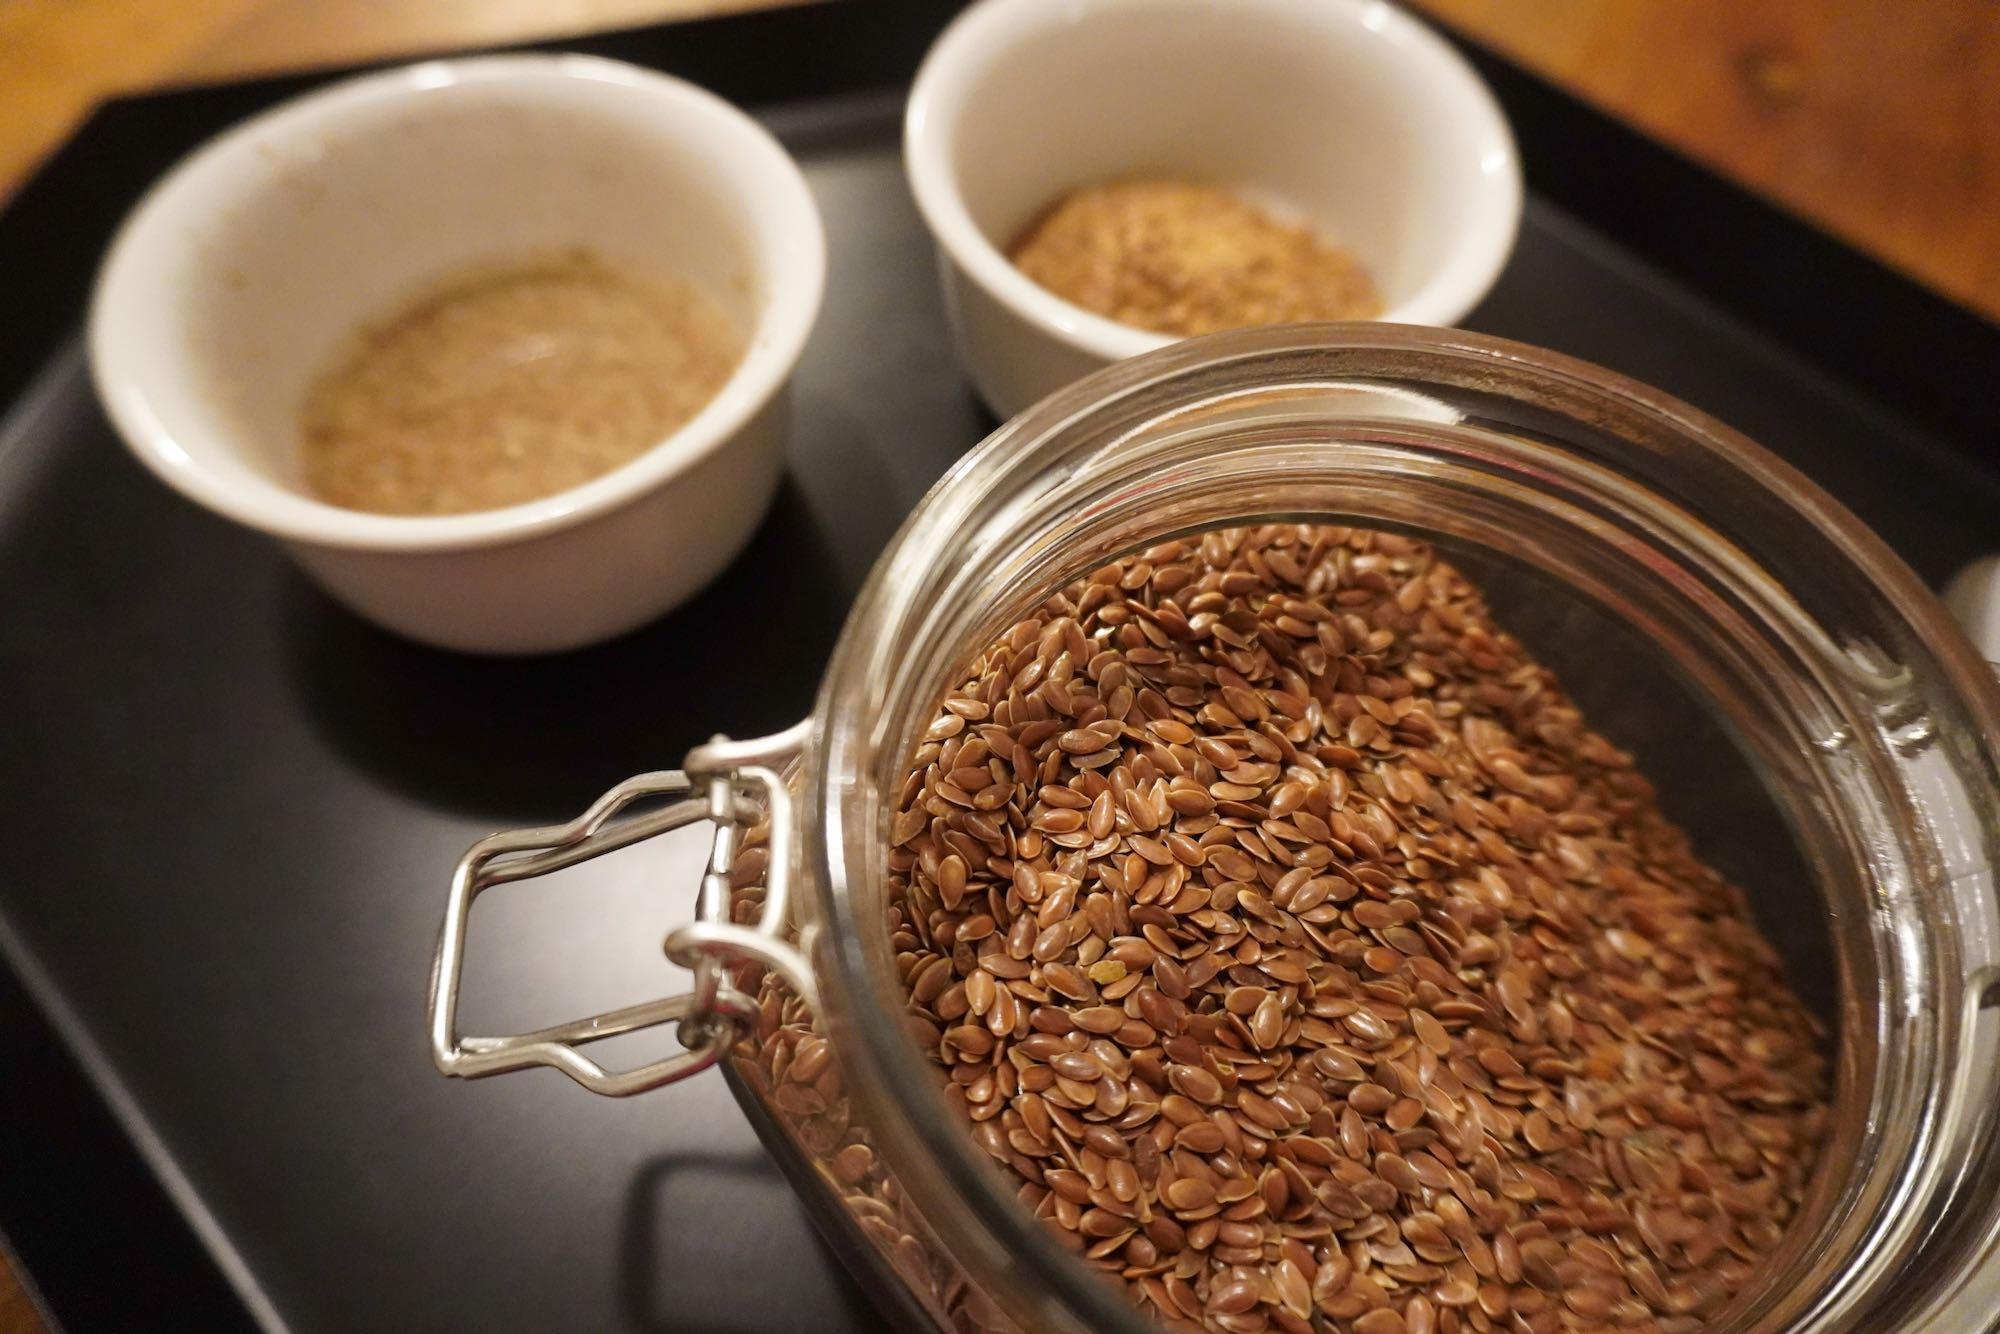 How to make a flax egg using flax seeds